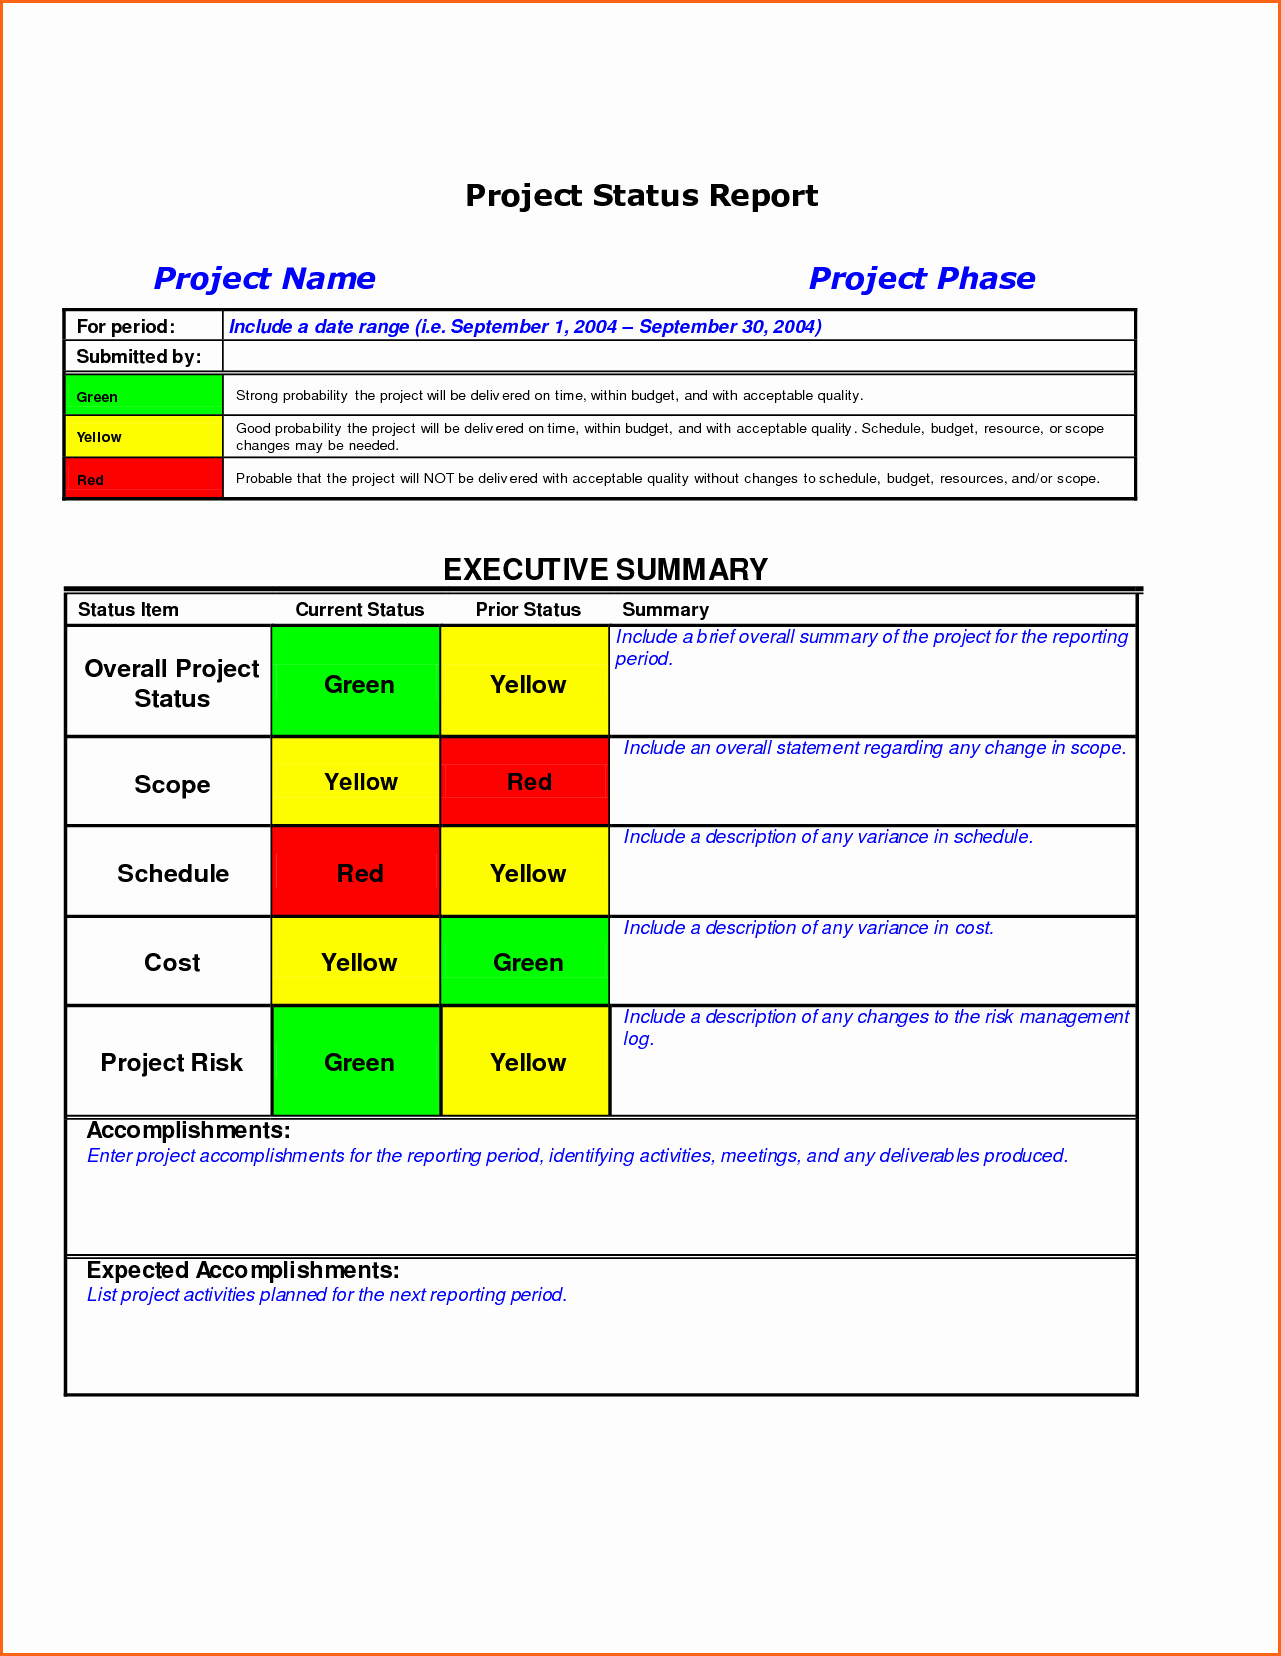 Weekly Status Report Template Excel New Weekly Status Report Template Excel Free Download